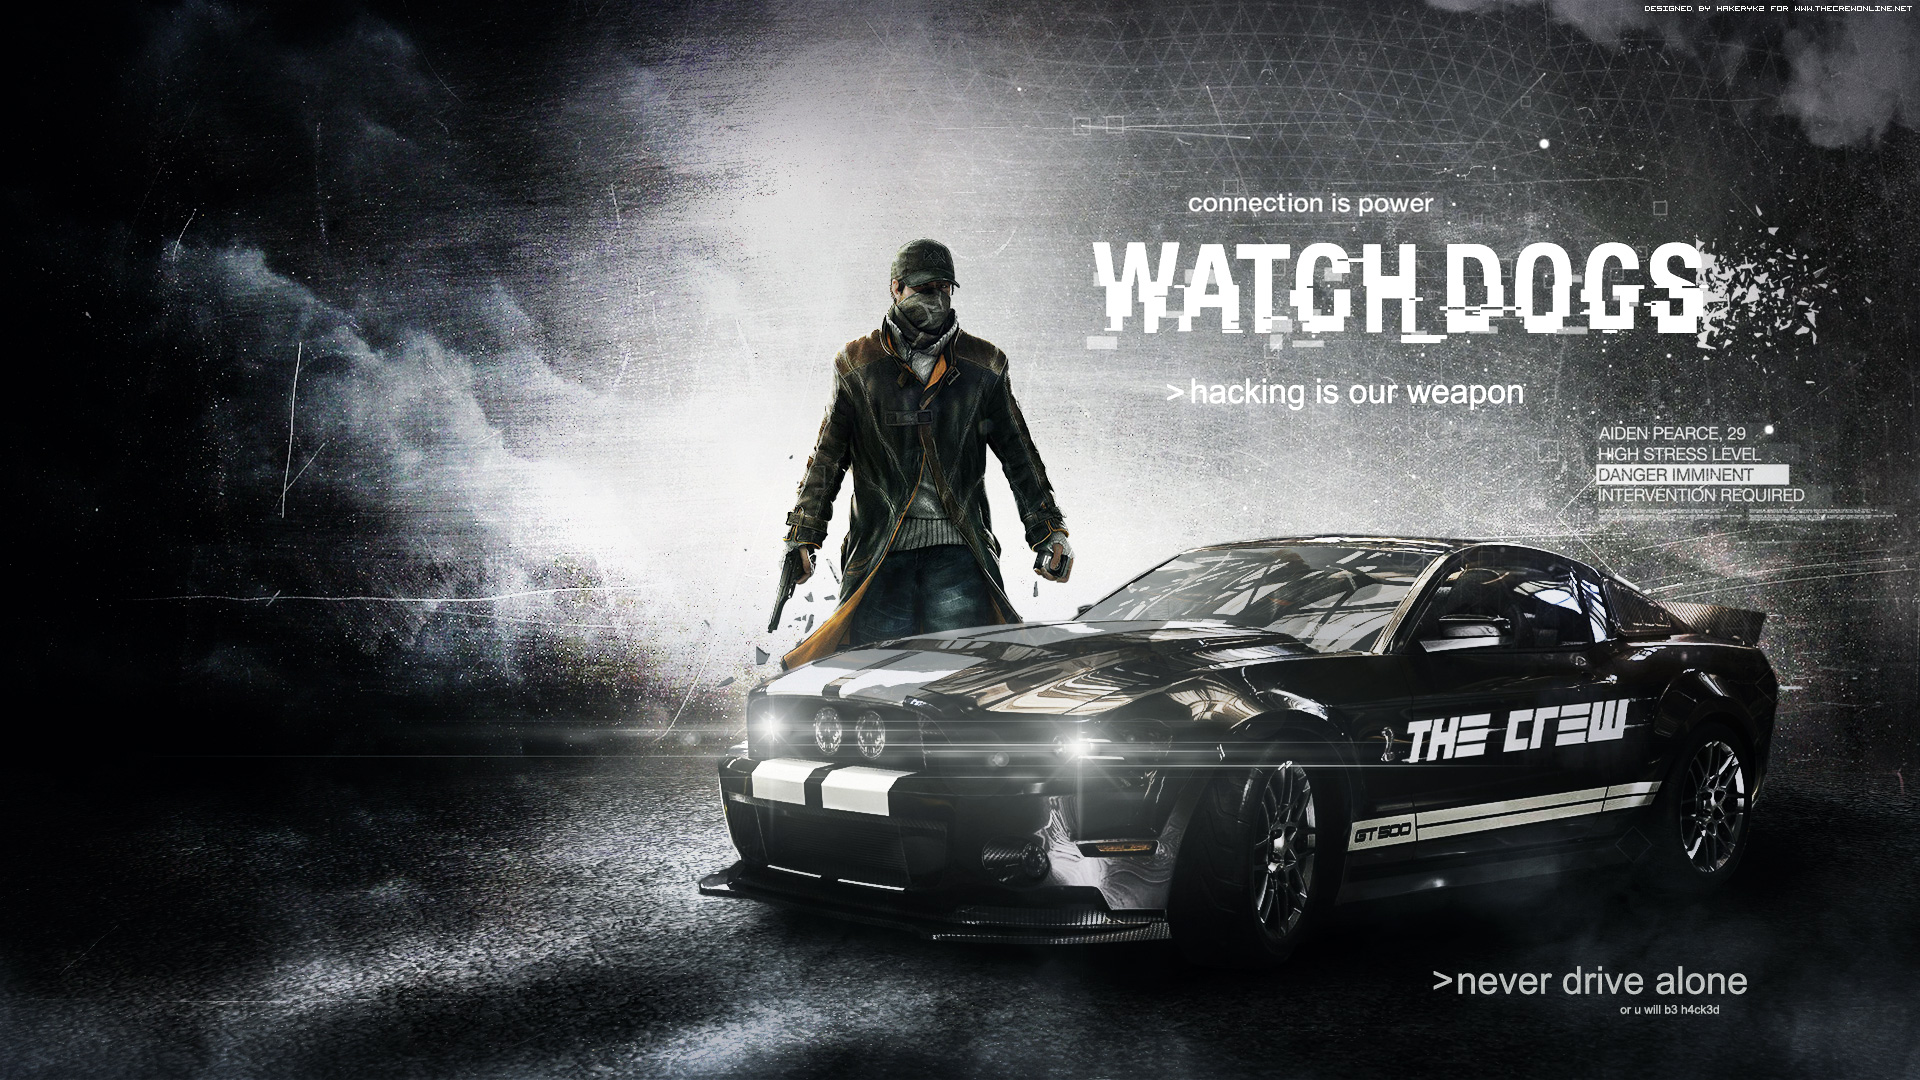 Watch Dogs Wallpapers 1 4 1920x1080